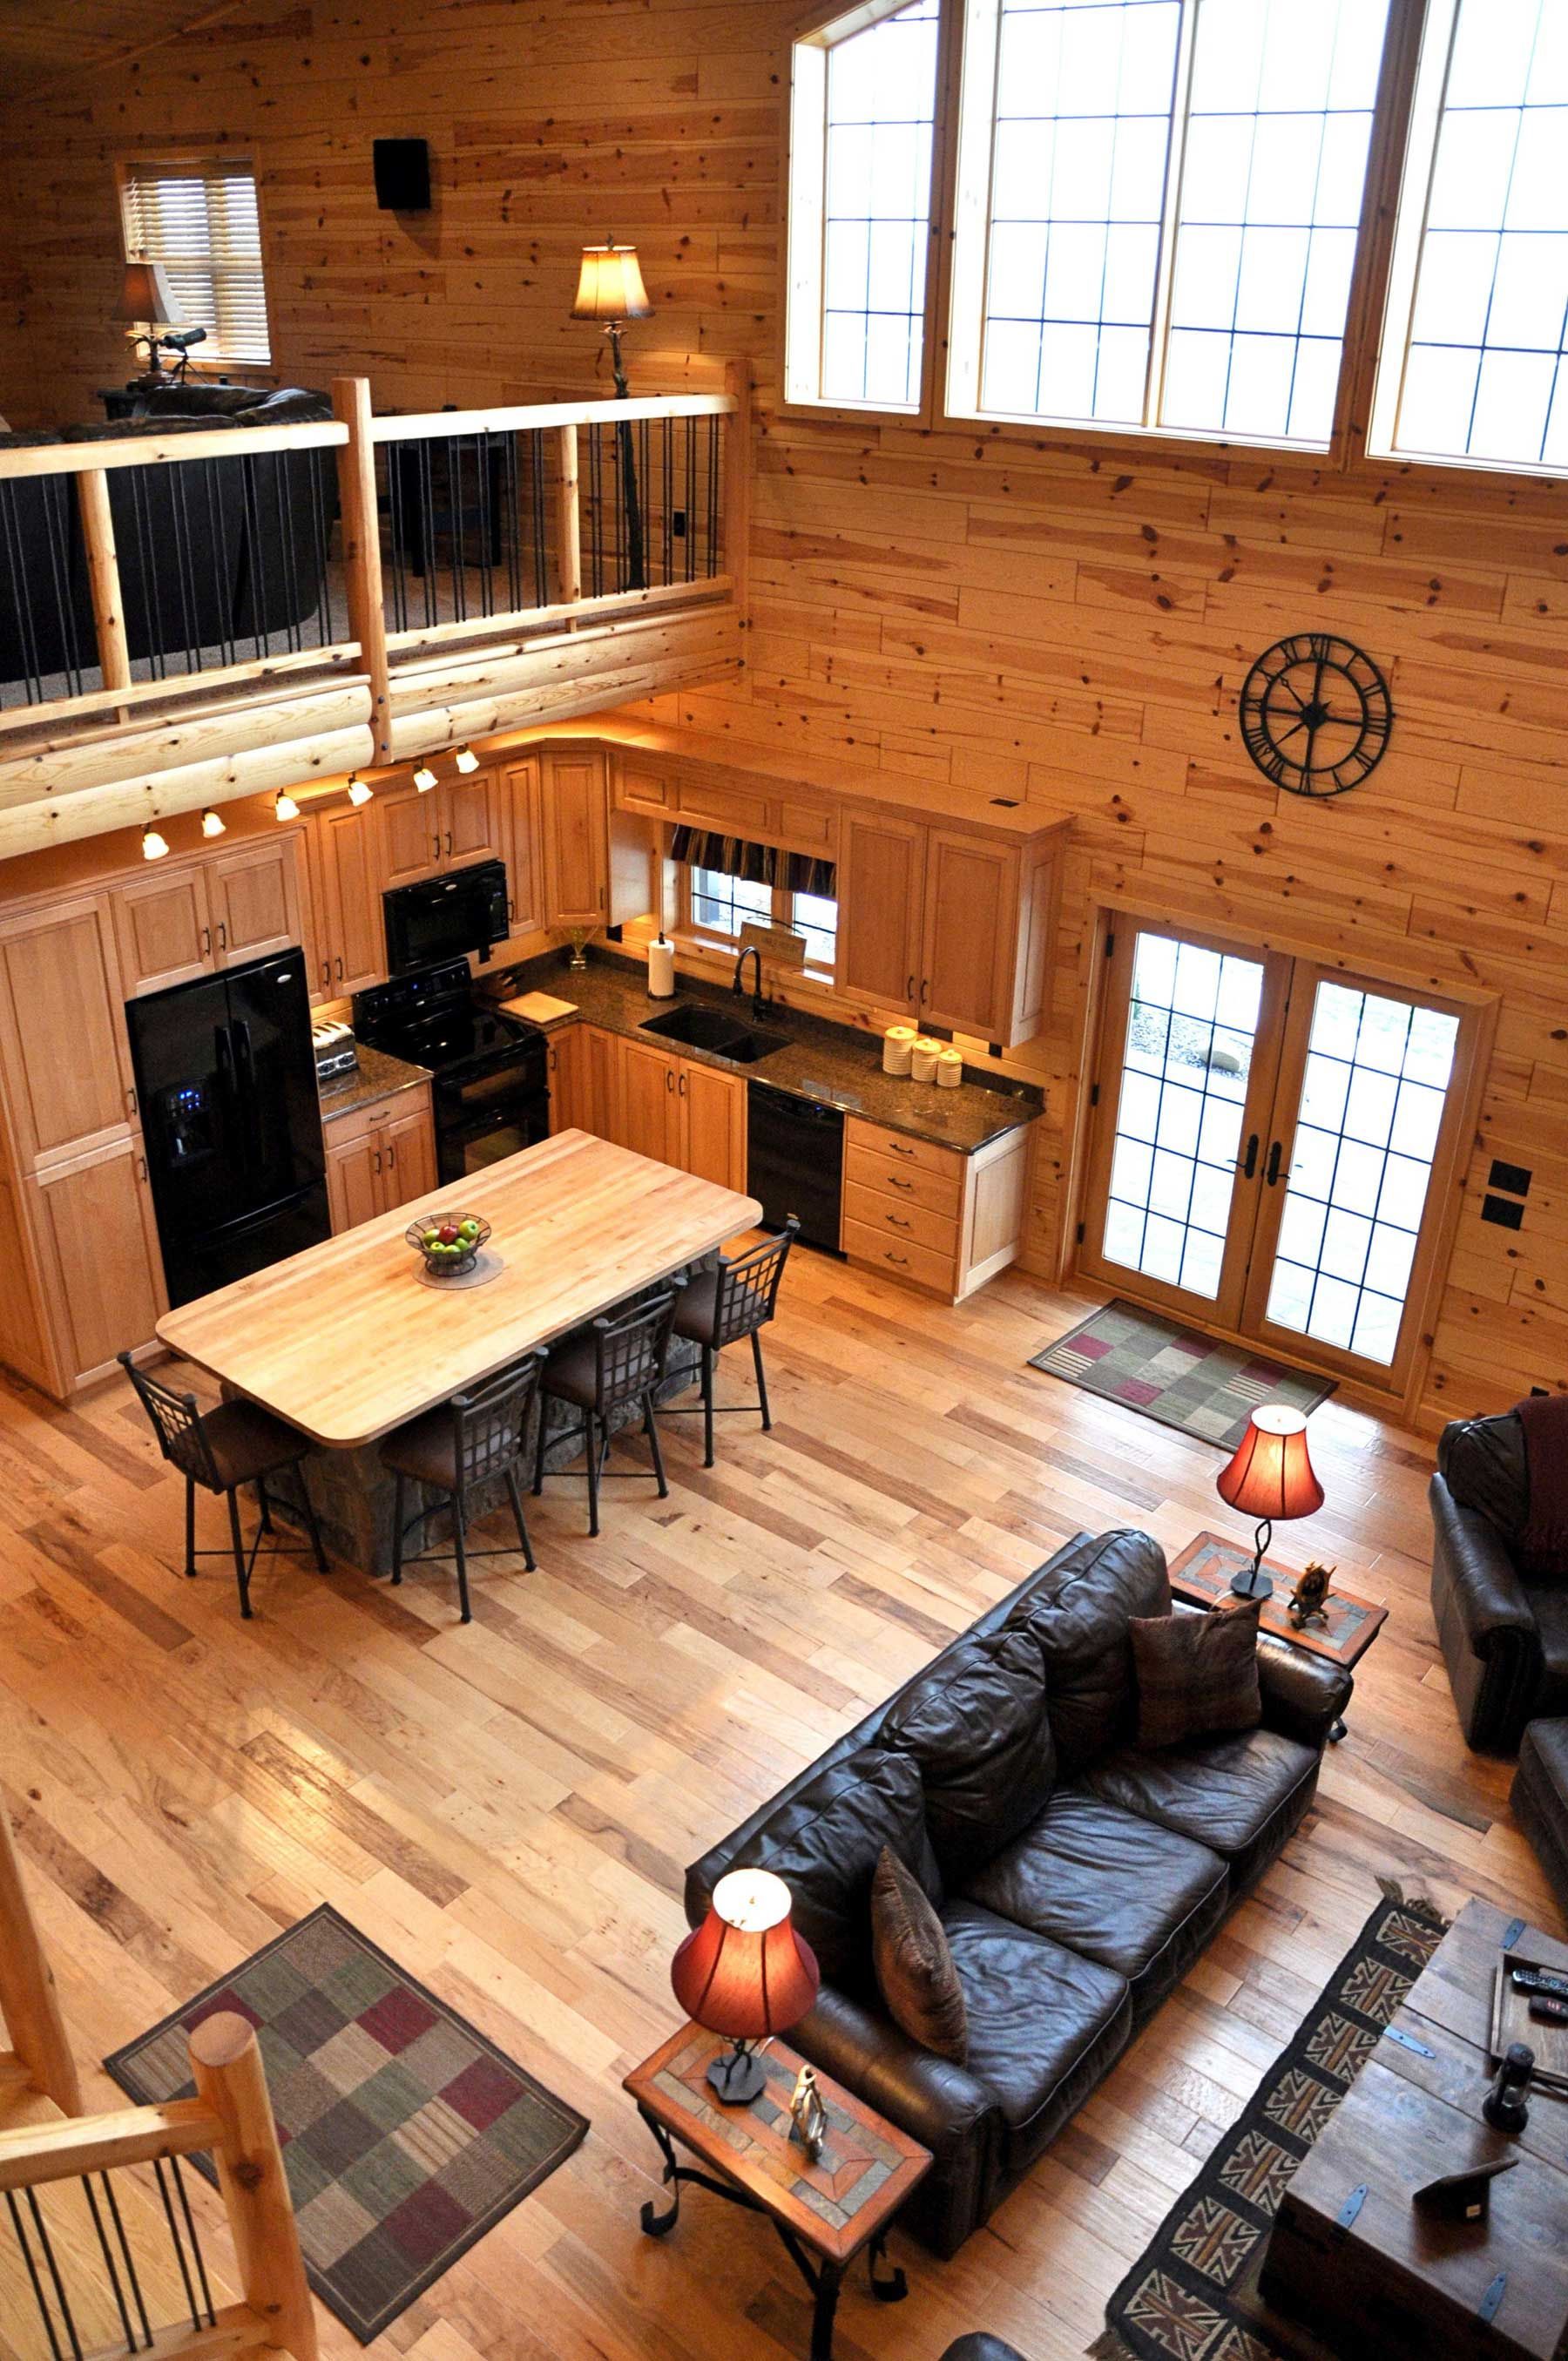 Interior Wood Paneling: Log Home & Cabin Pictures